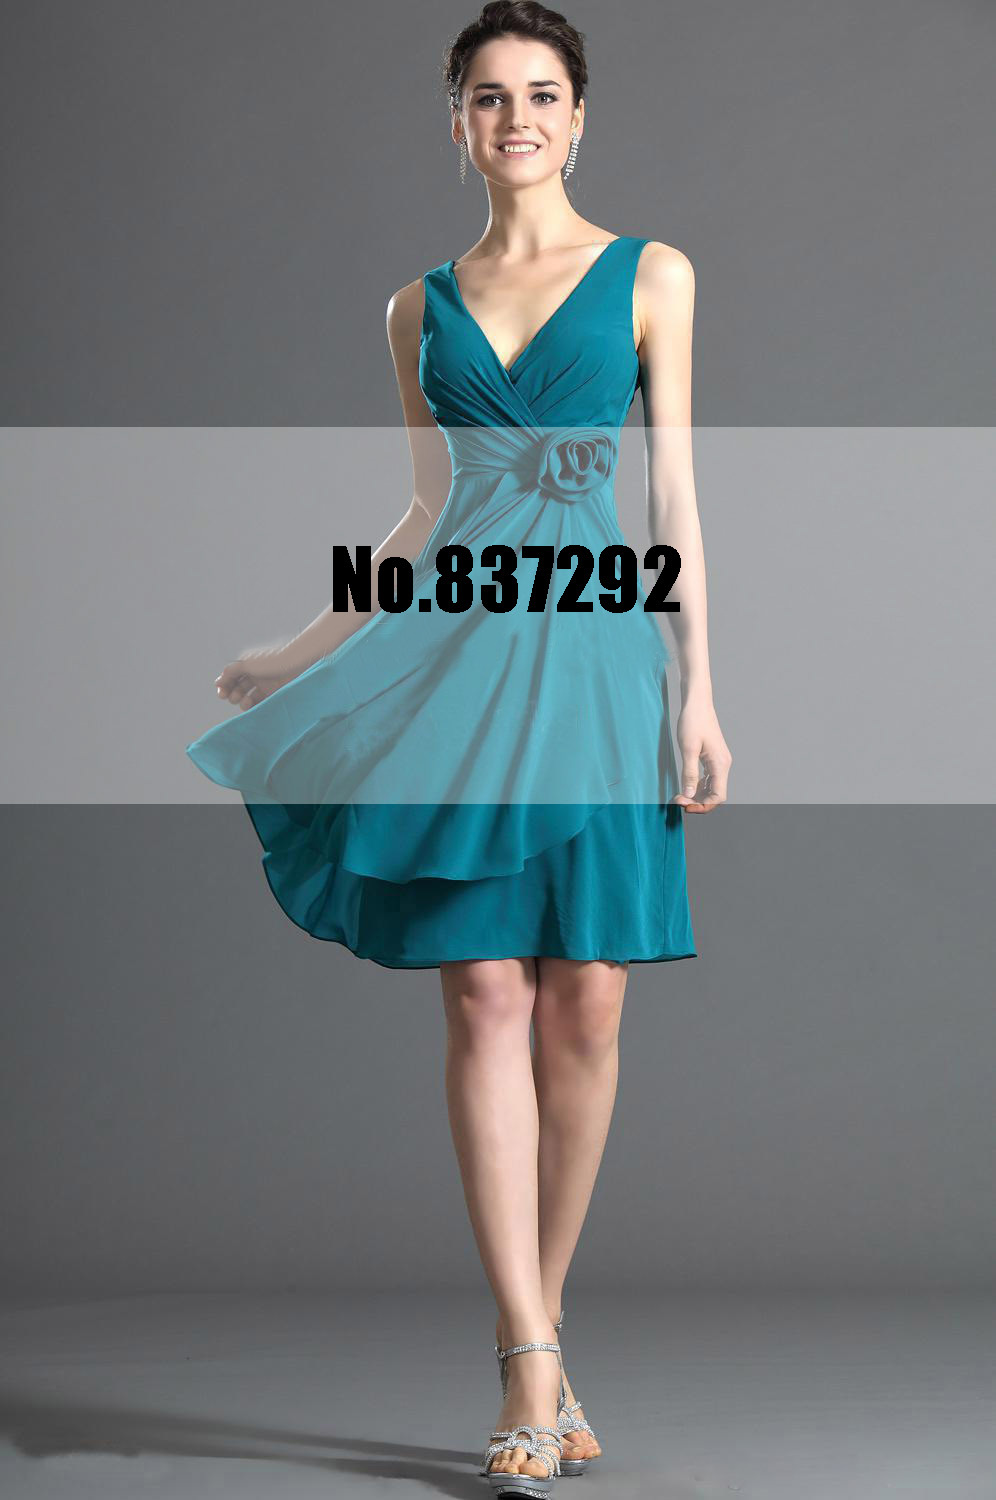 Outstanding Teal Junior Bridesmaid Dresses Photos - All Wedding ...